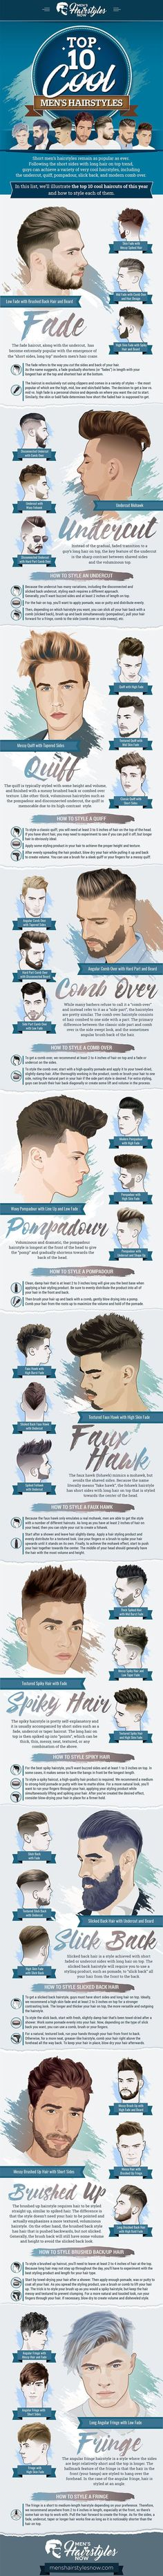 Cool Hairstyles For Men - Best Trendy and Stylish Men's Haircuts 2017